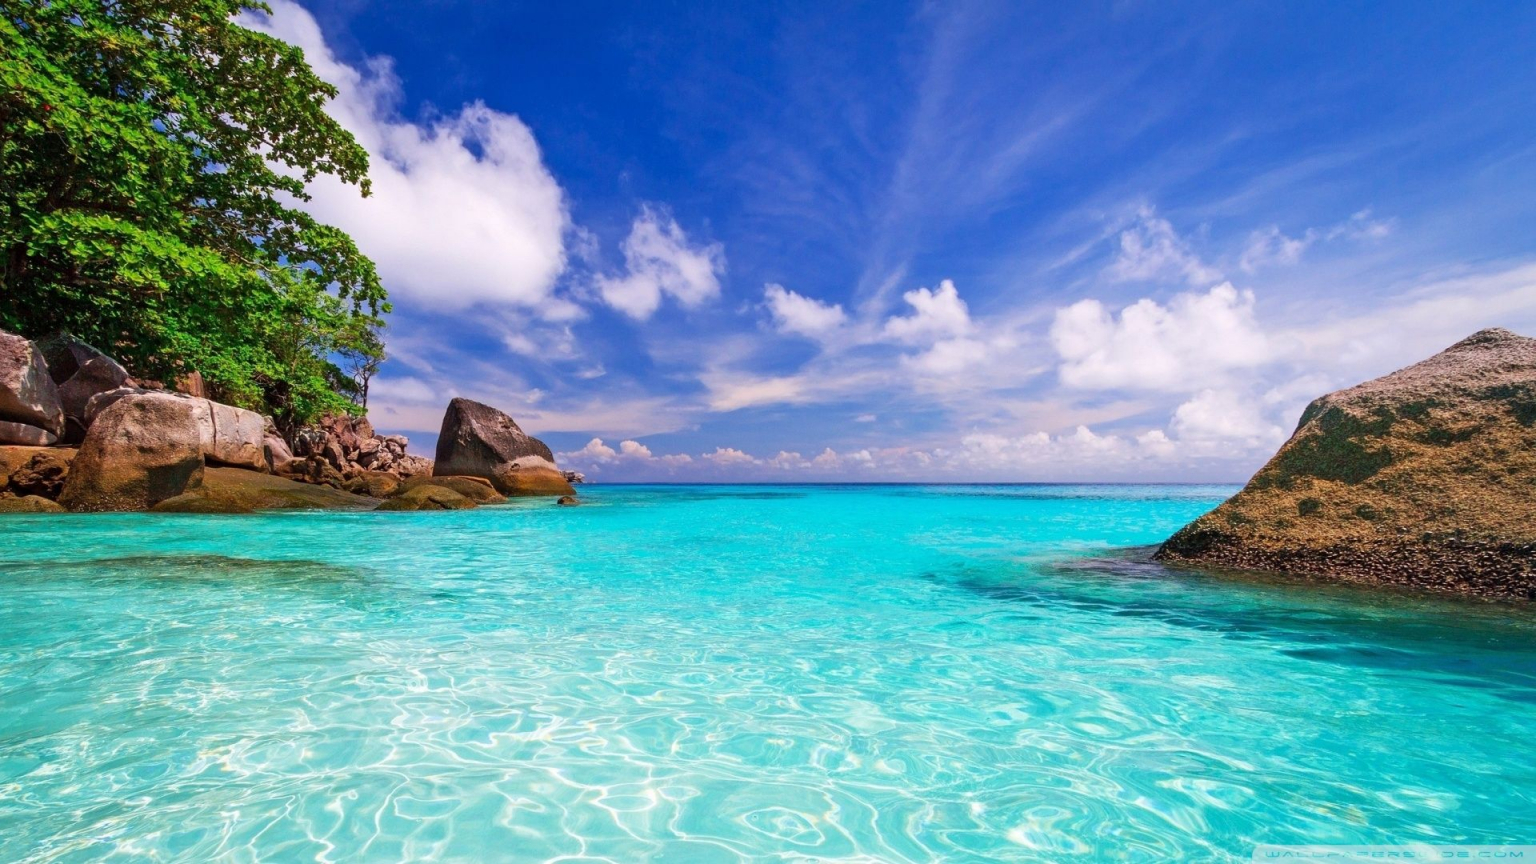 Download At Wallpaperbro: Free Download 45 1920X1080 HD Beach Wallpapers Download At